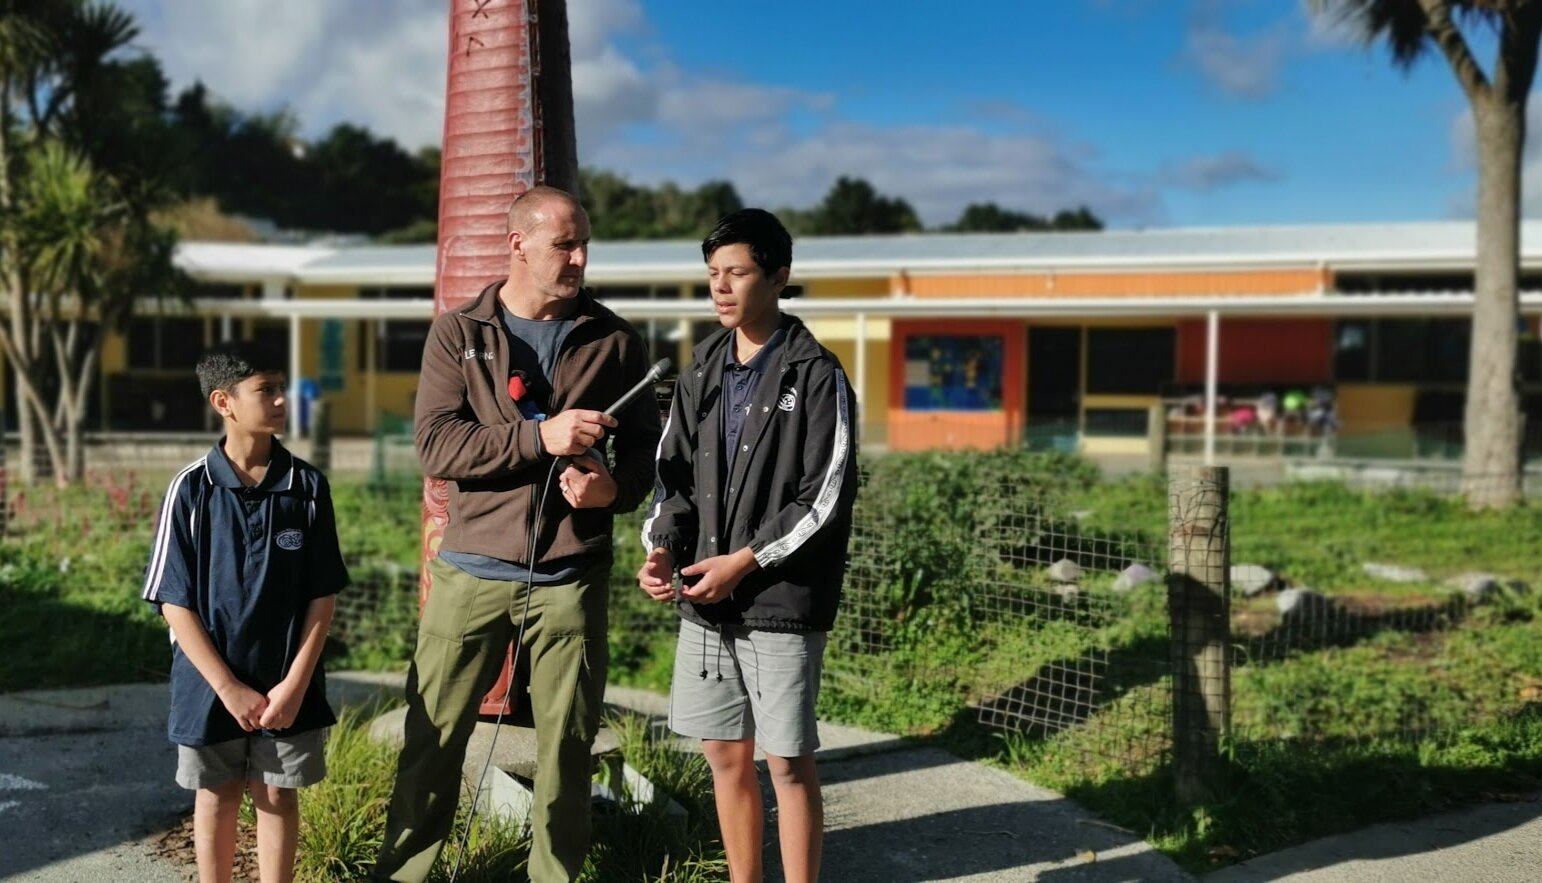 Map My Waahi:  Manaia Bennet (left), and Andre Marshall (on right) from Te Kura Māori O Porirua with Andrew, LEARNZ field trip teacher, getting filmed talking about what the pēpeha means to them as part of the Map My Waahi virtual field trip. The video will be used as part of Pēpeha (June 2019).